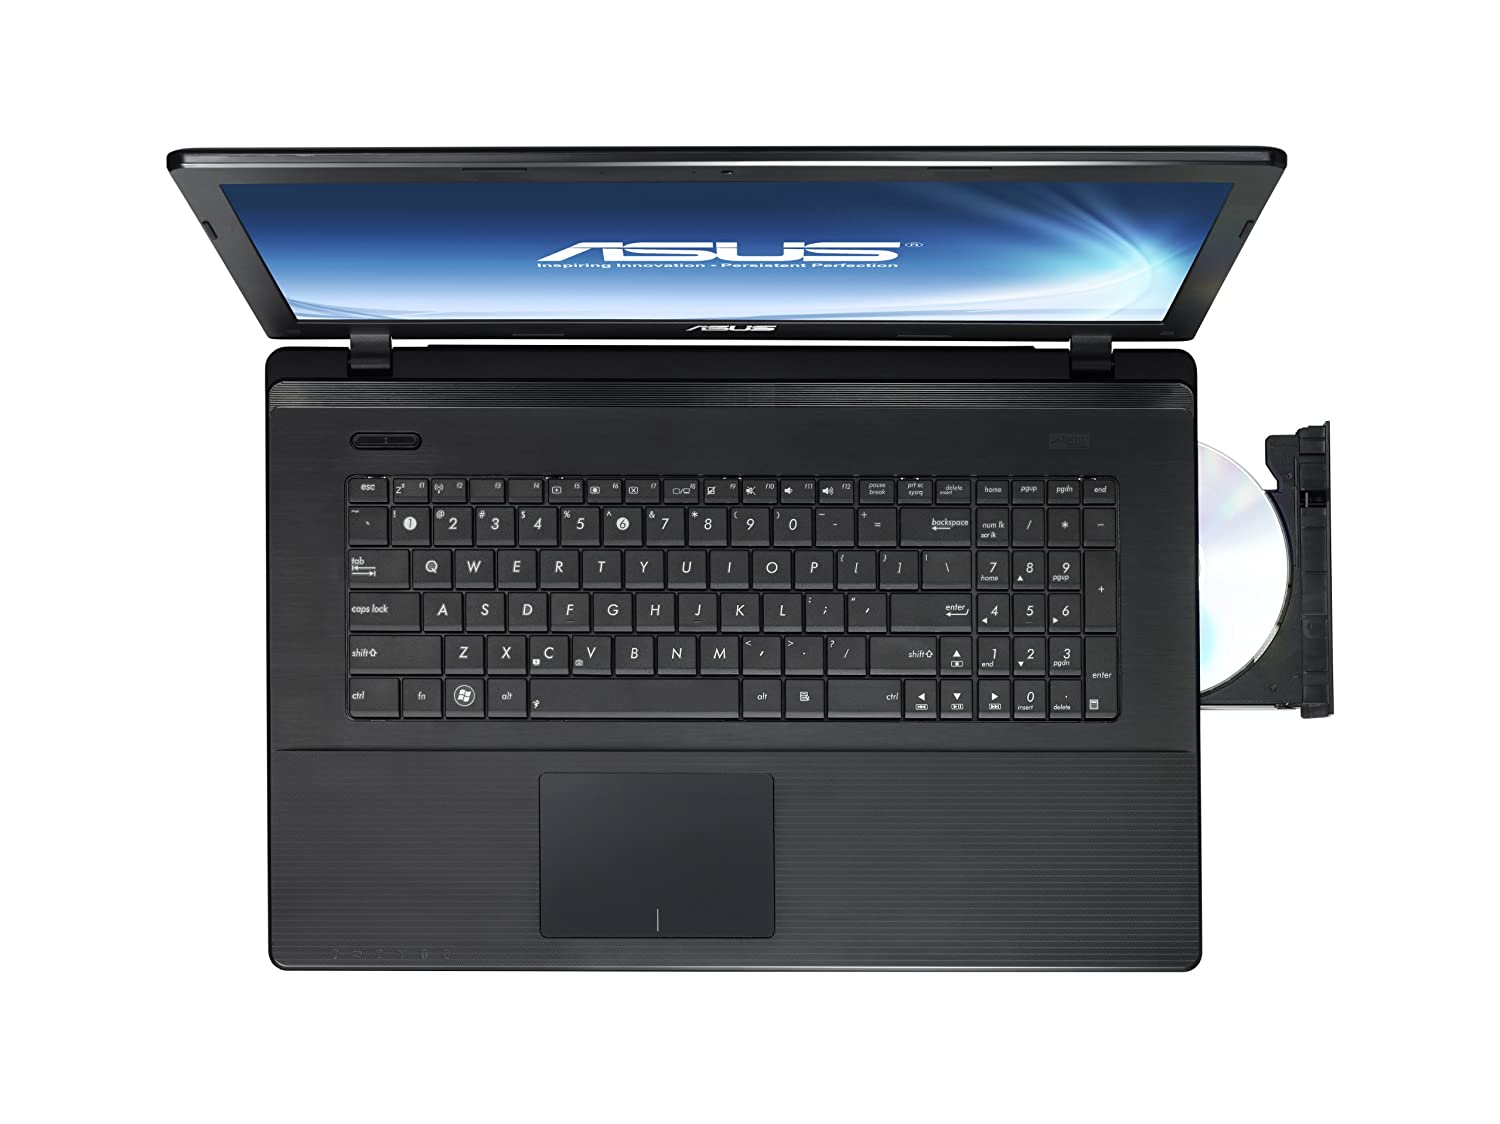 ASUS X75A-DS51 17.3-Inch Laptop (Black)